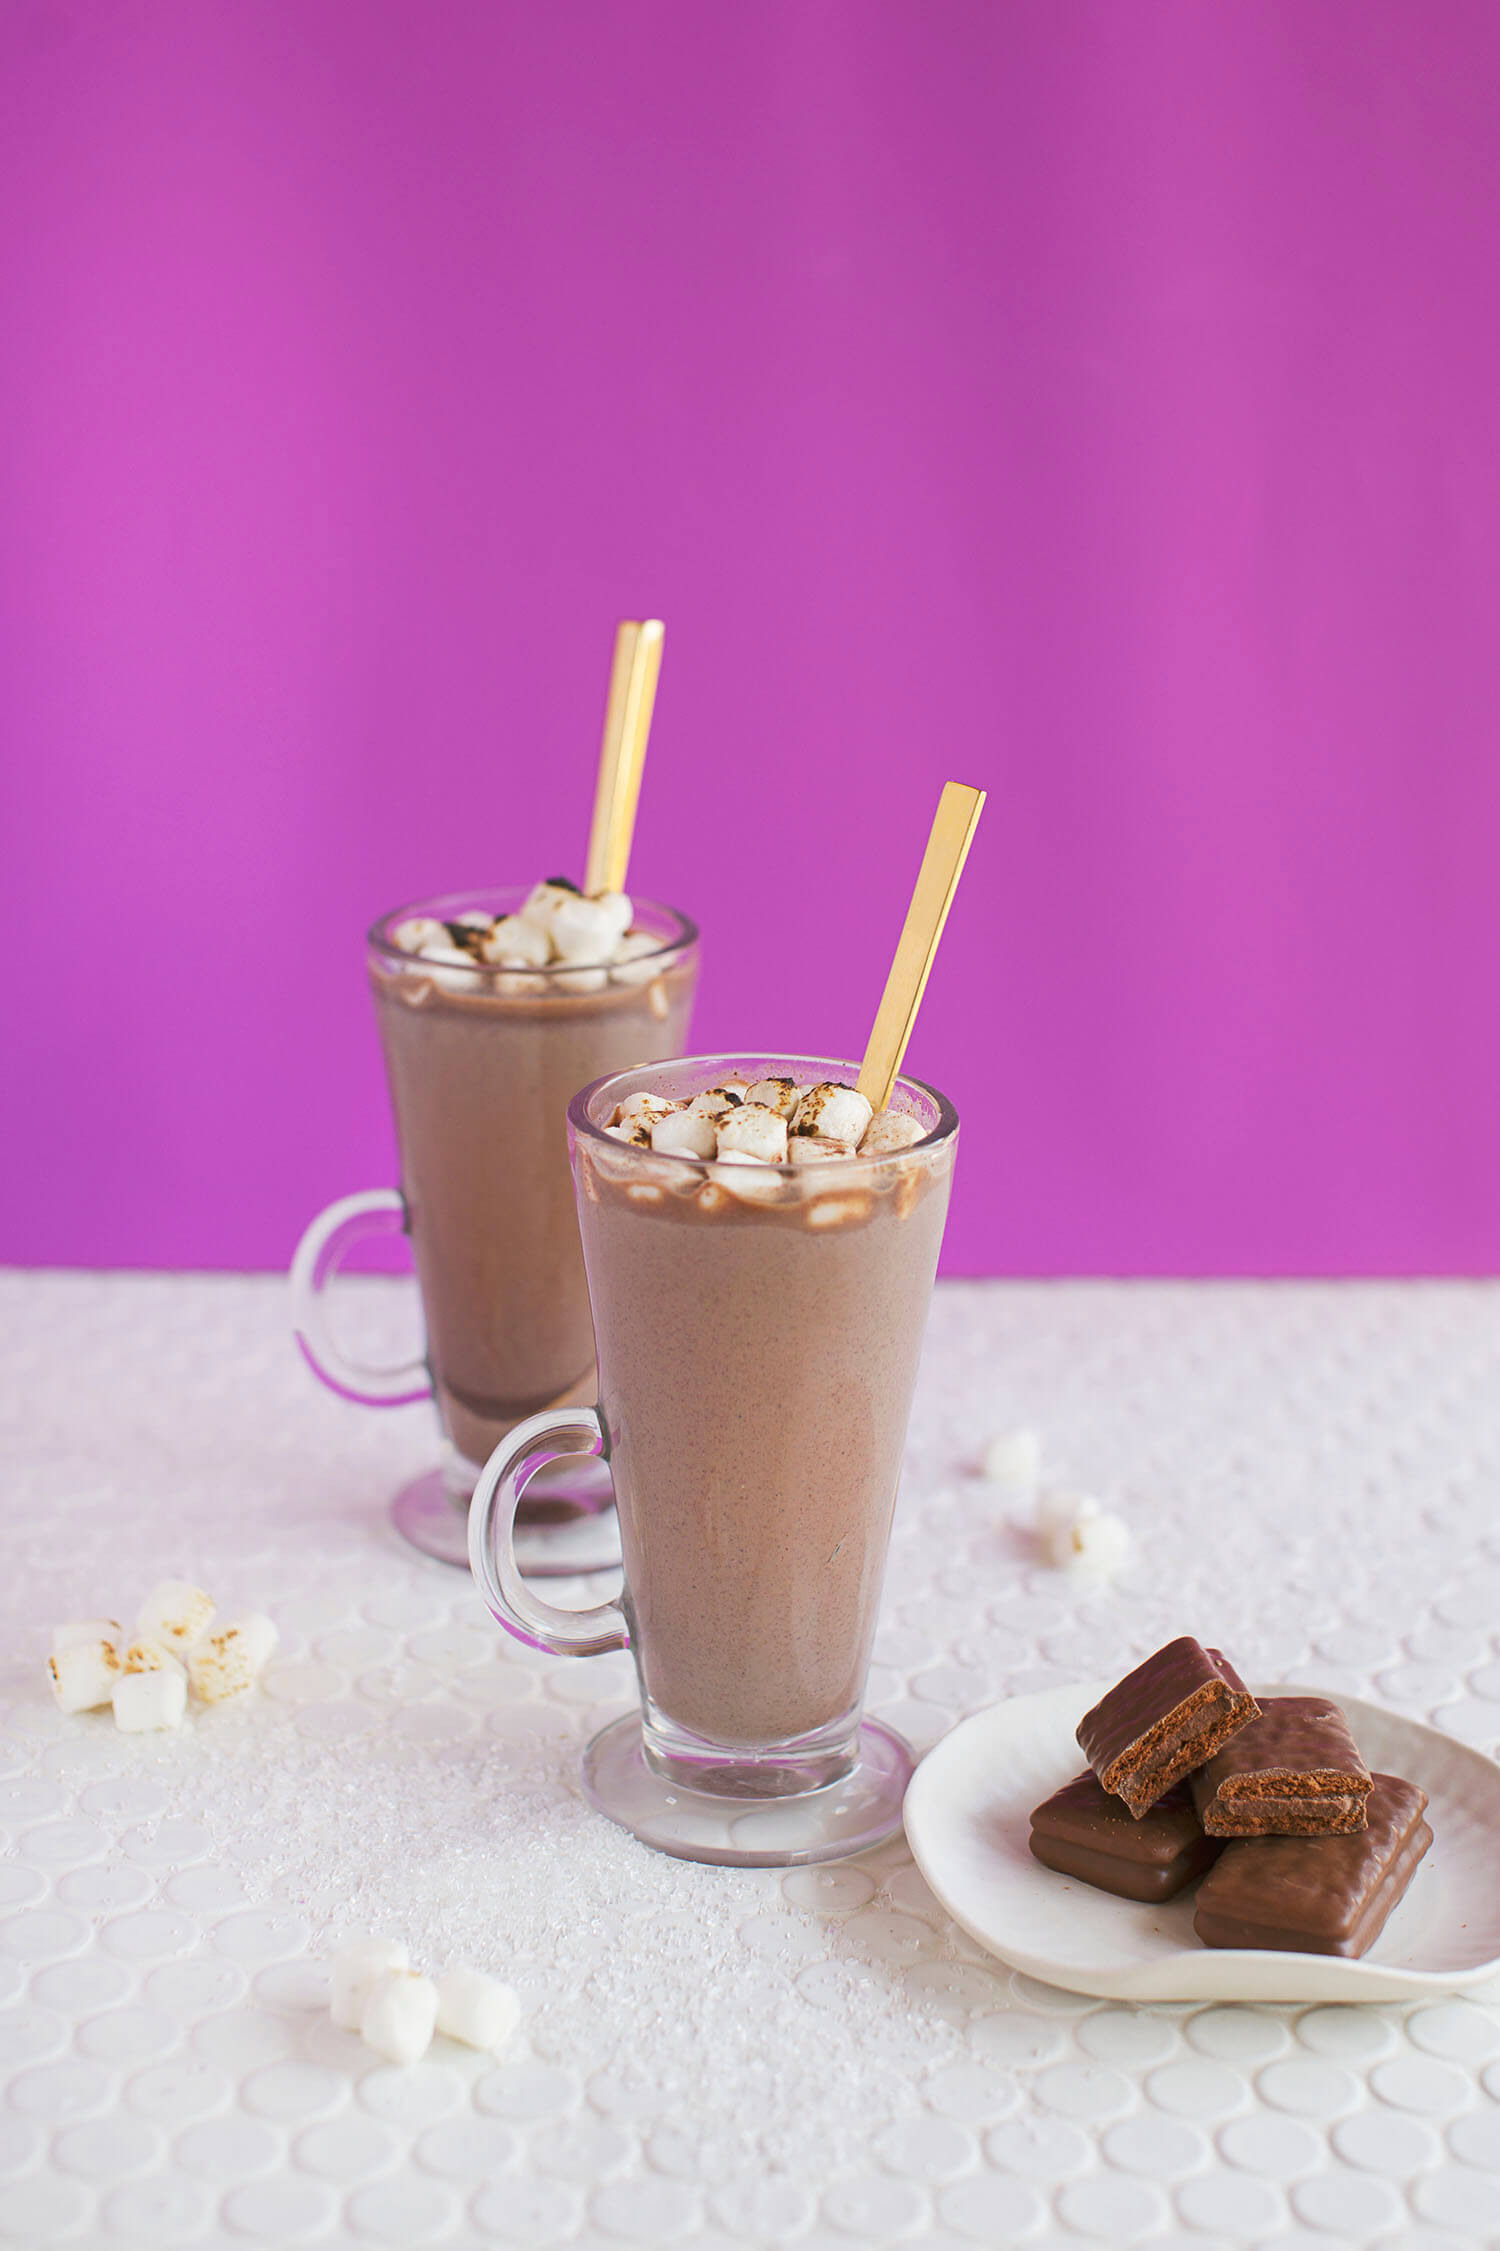 Triple (Hot) Chocolate (via abeautifulmess.com)